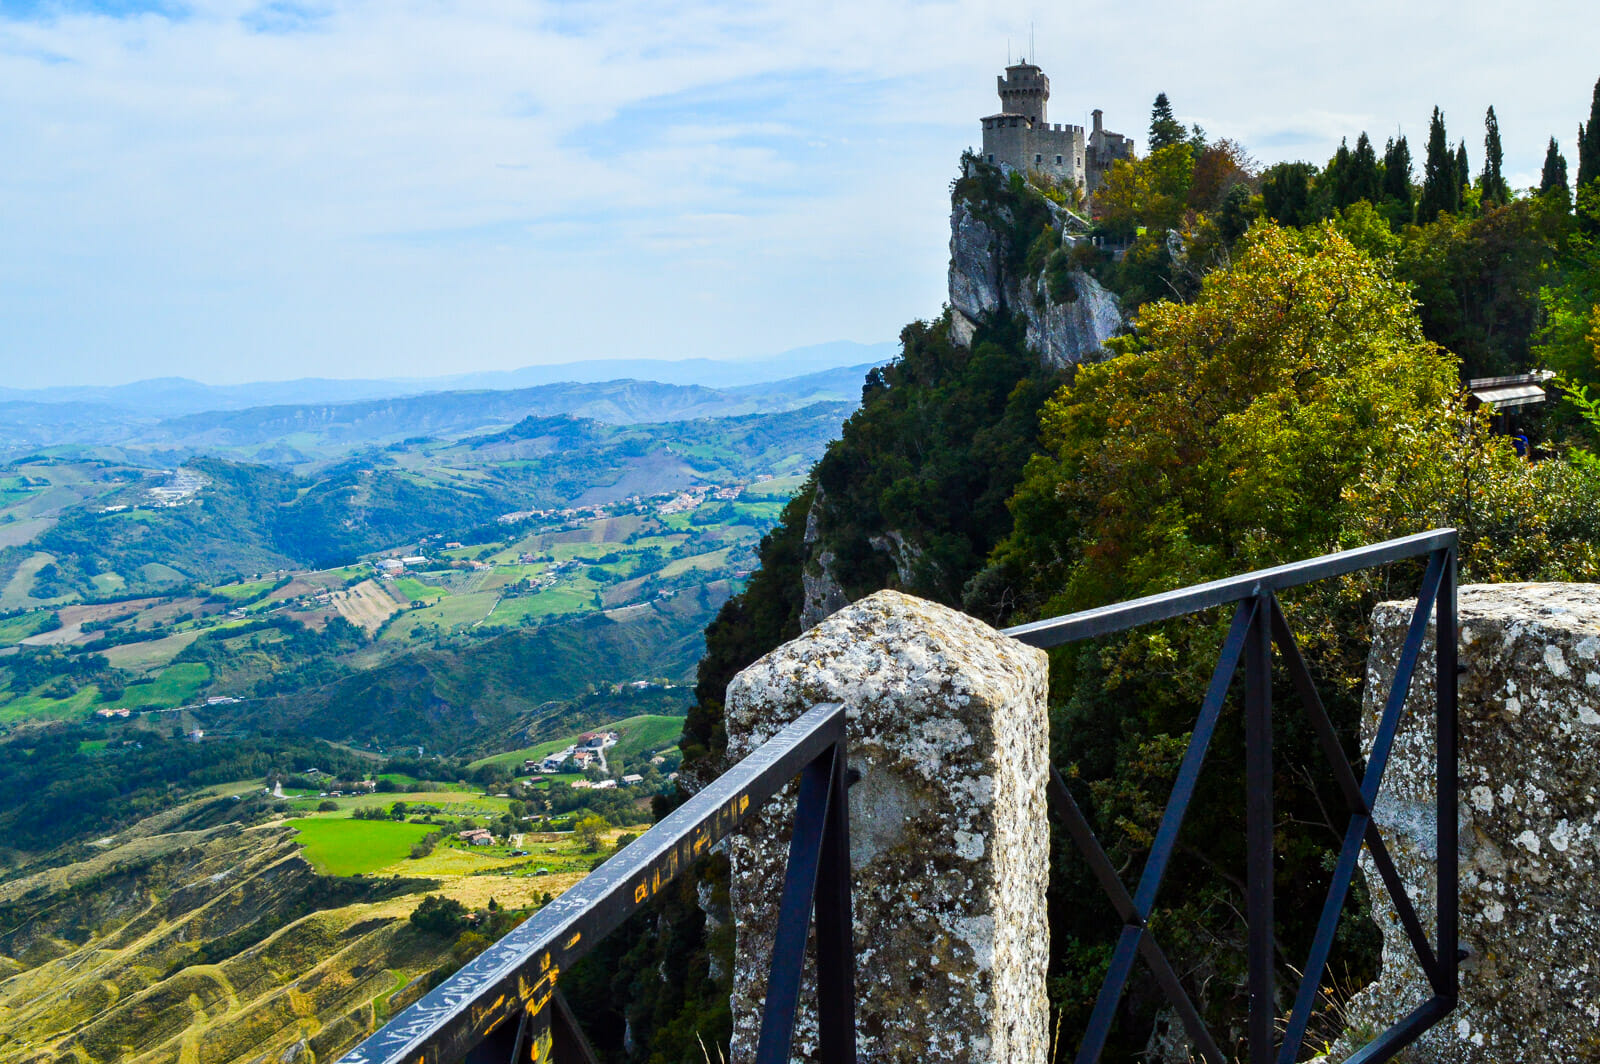 The Medieval Beauty of San Marino